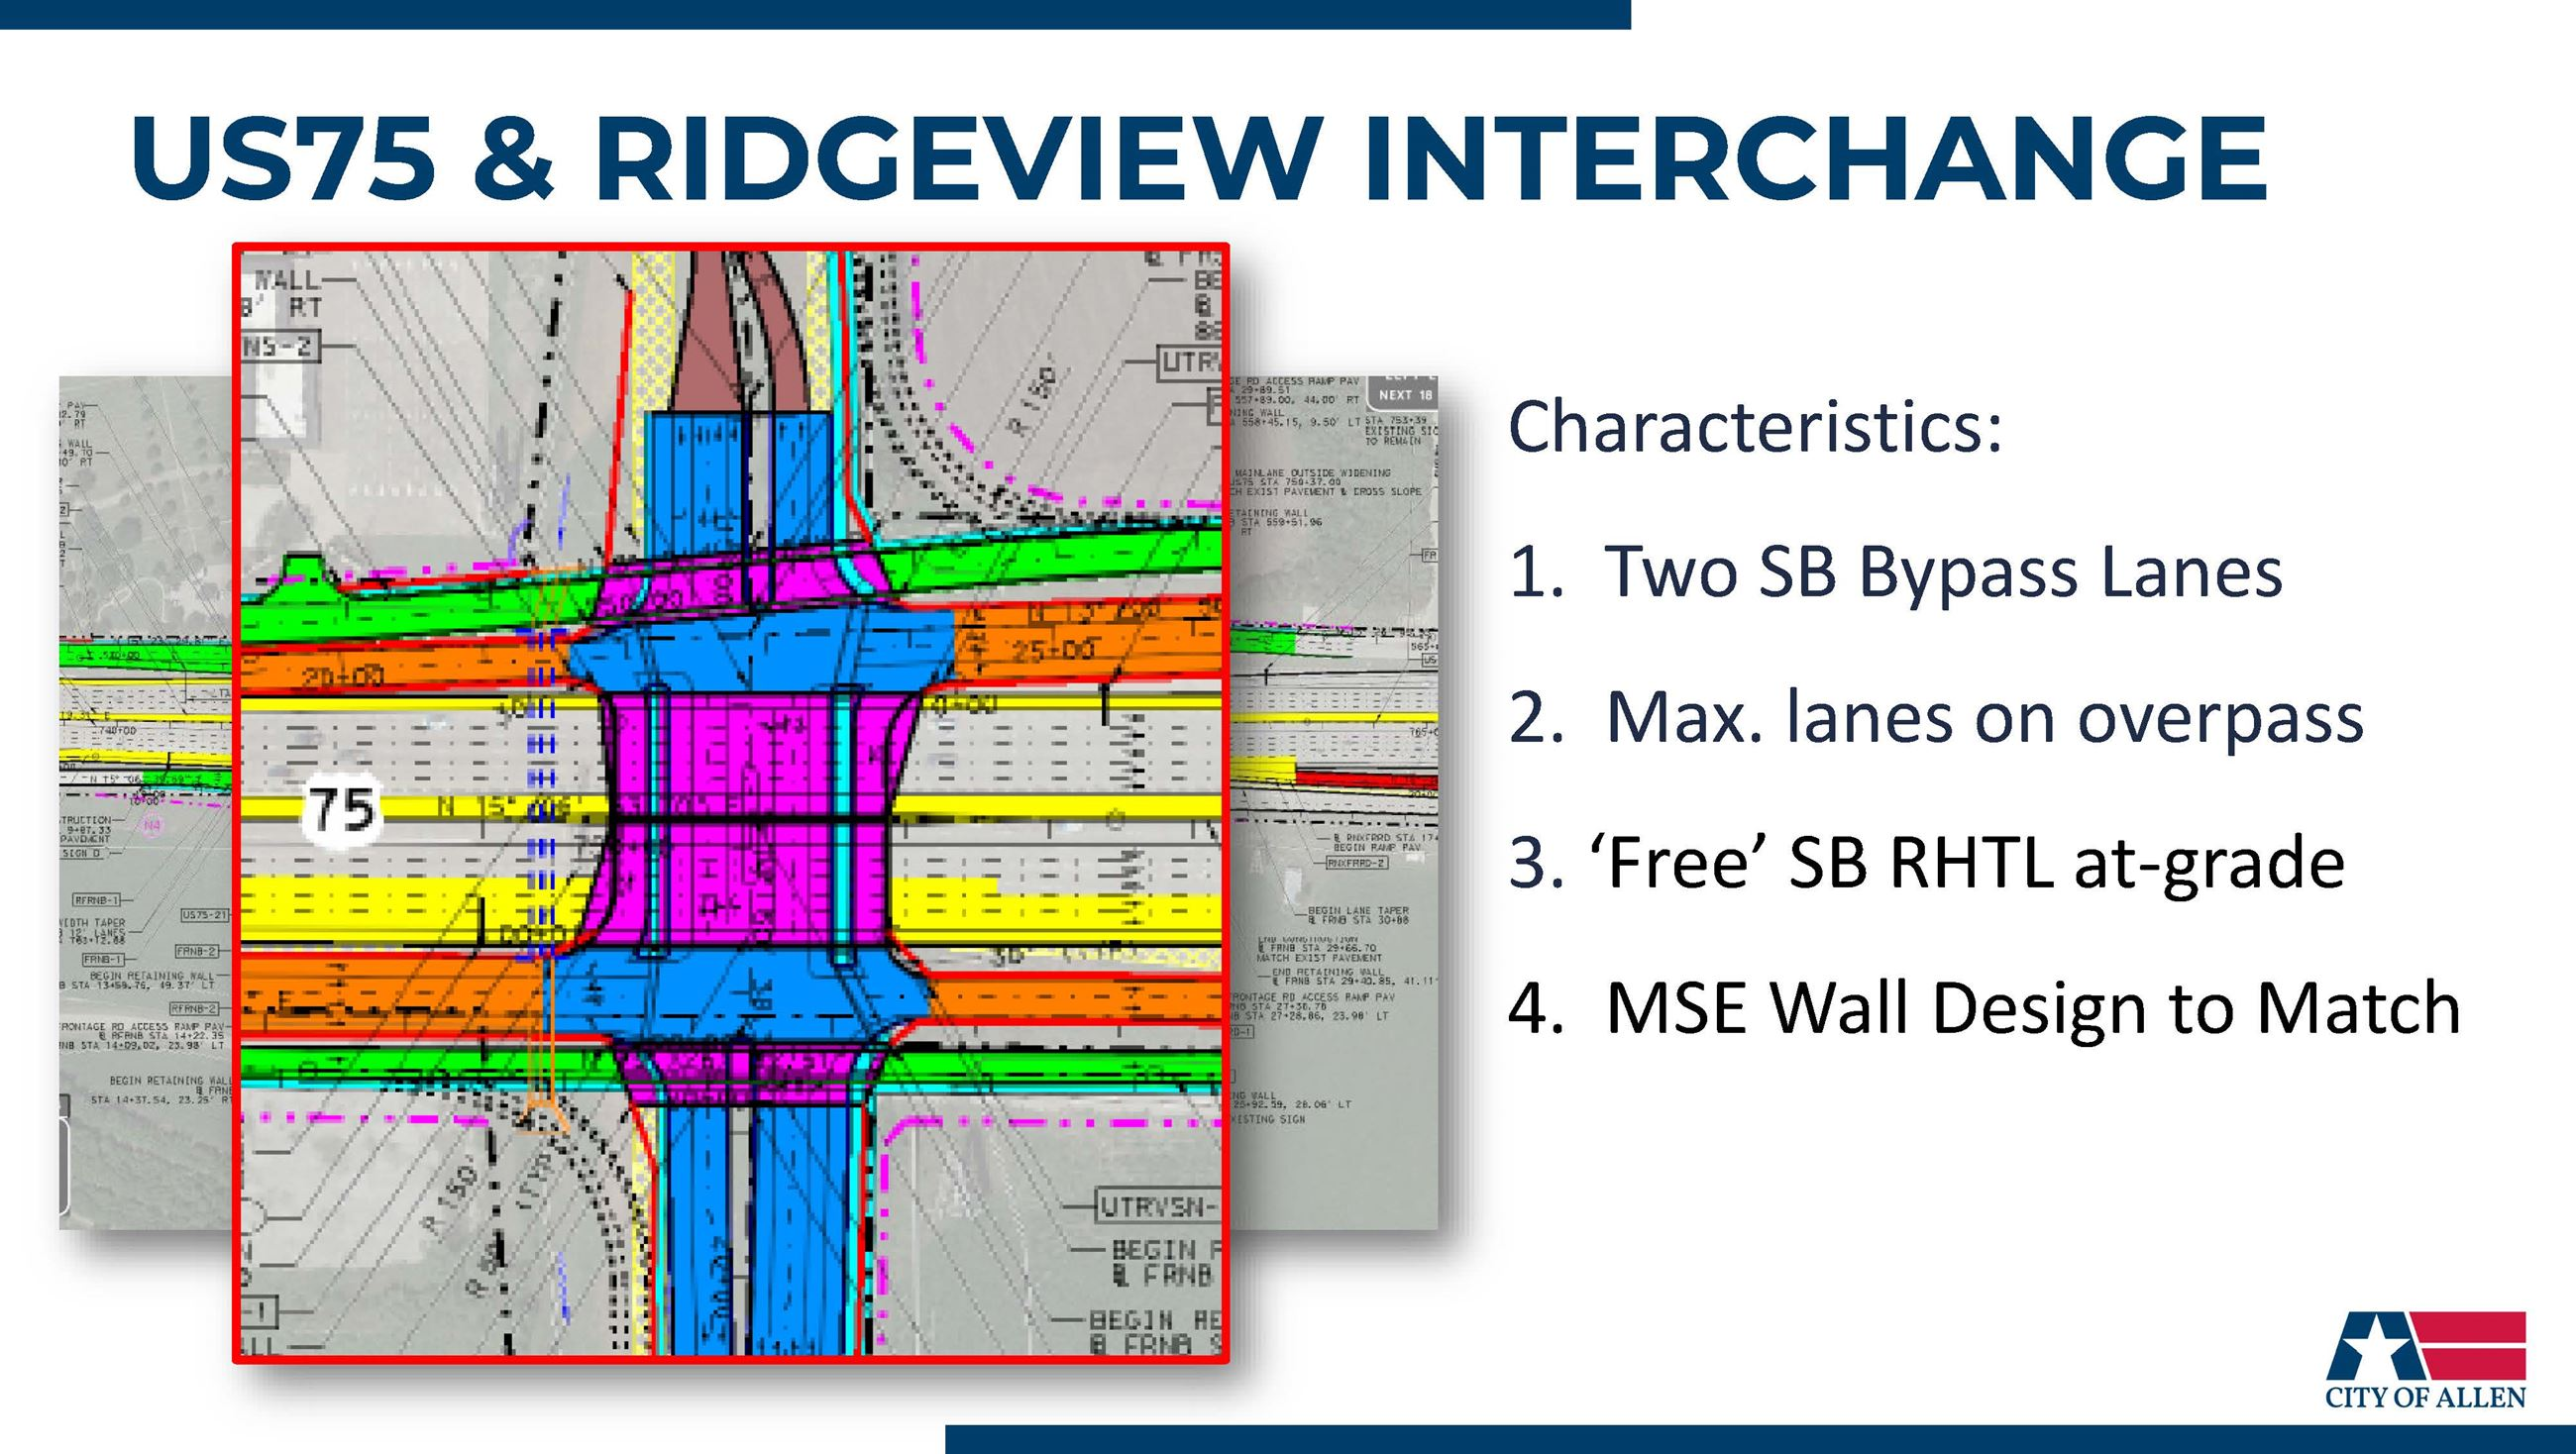 US 75 Ridgeview Interchange